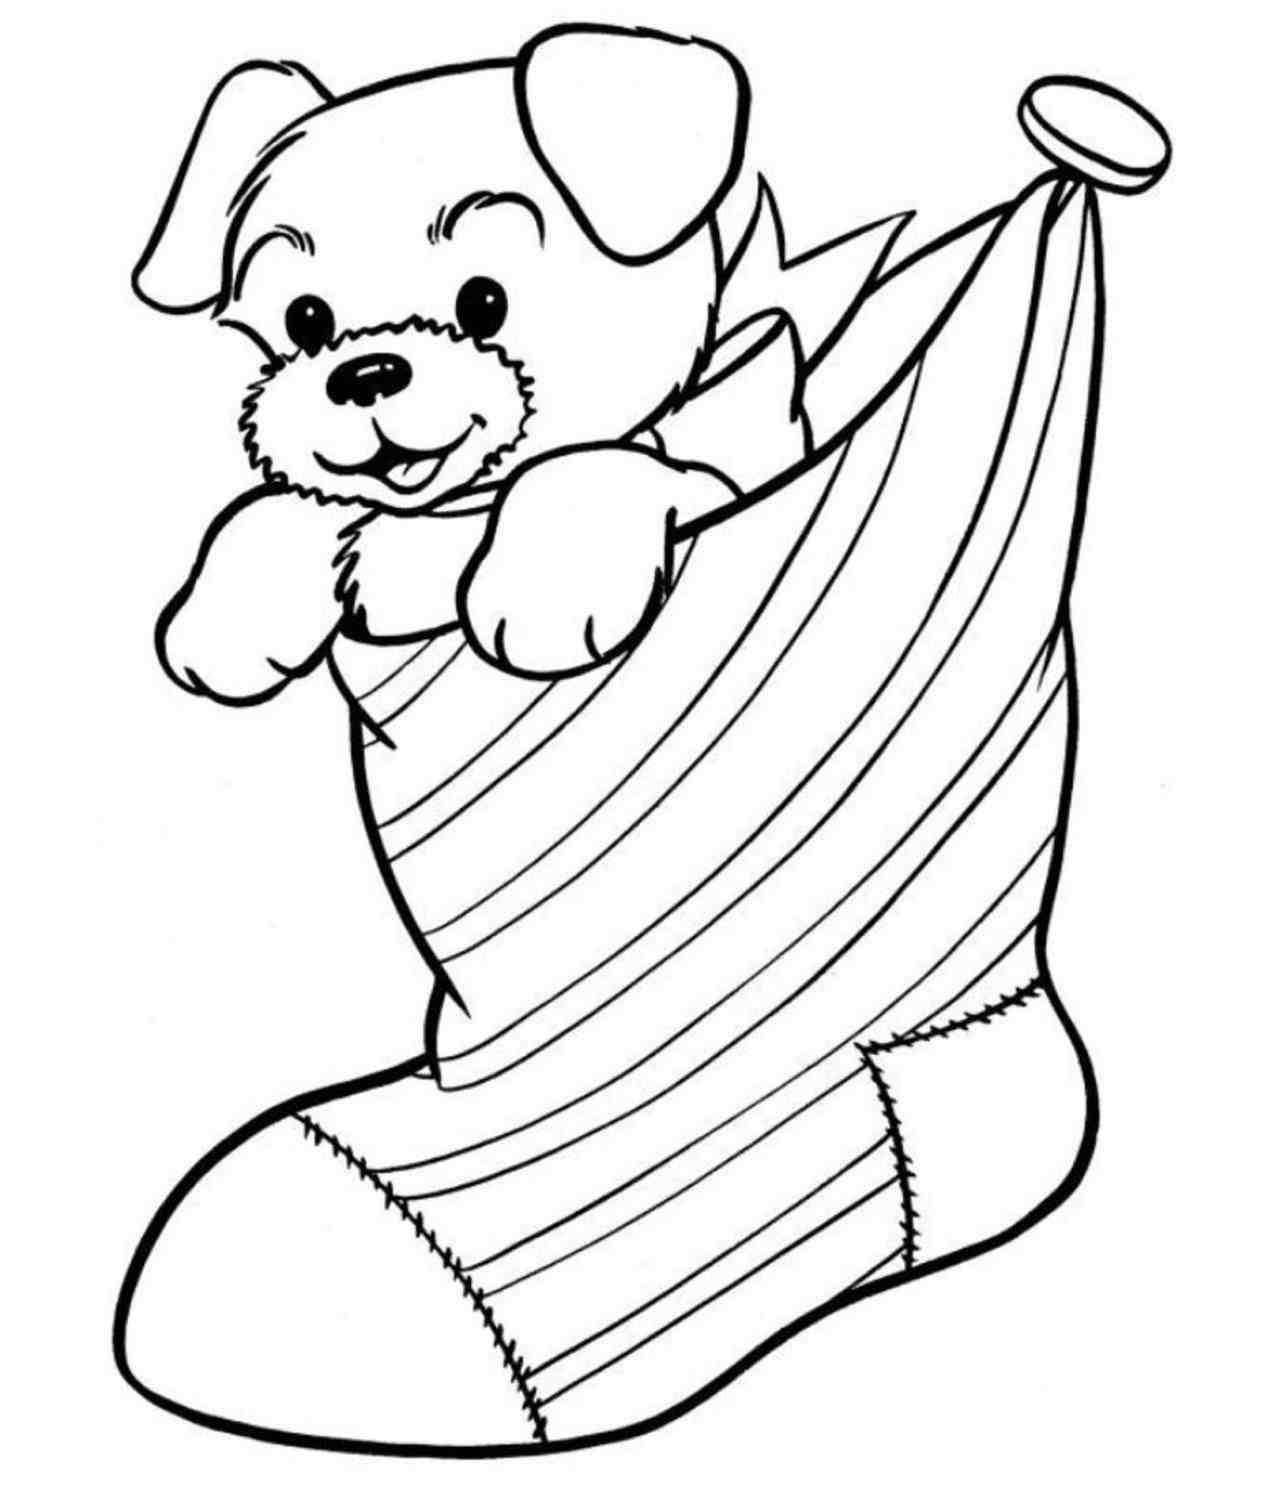 1280x1485 S Coloring Page Best Preschool To Tiny S Coloring Page Best Print